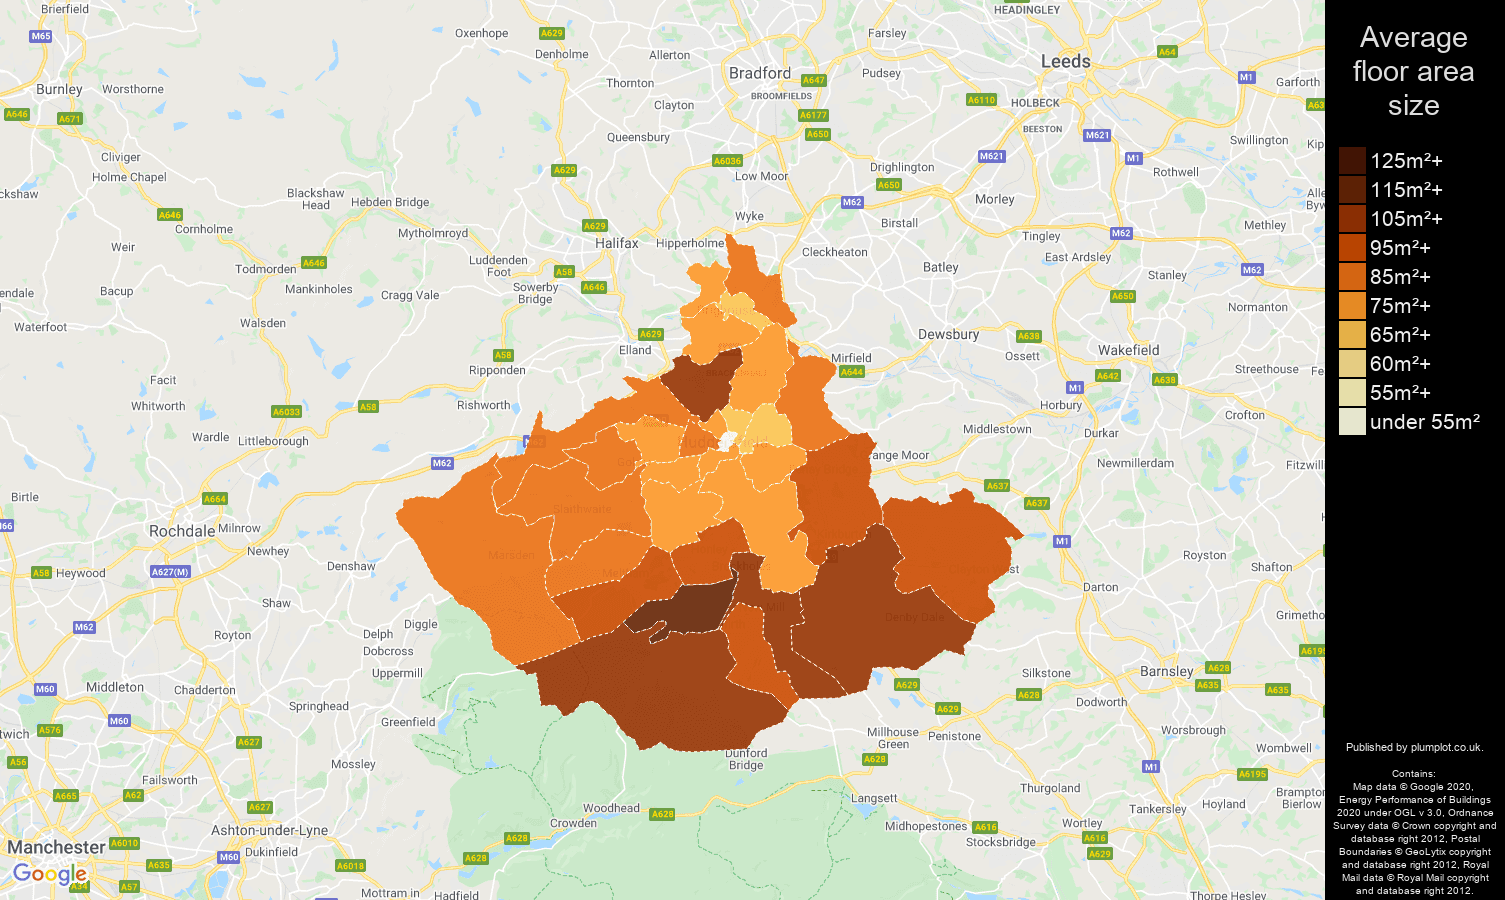 Huddersfield map of average floor area size of properties